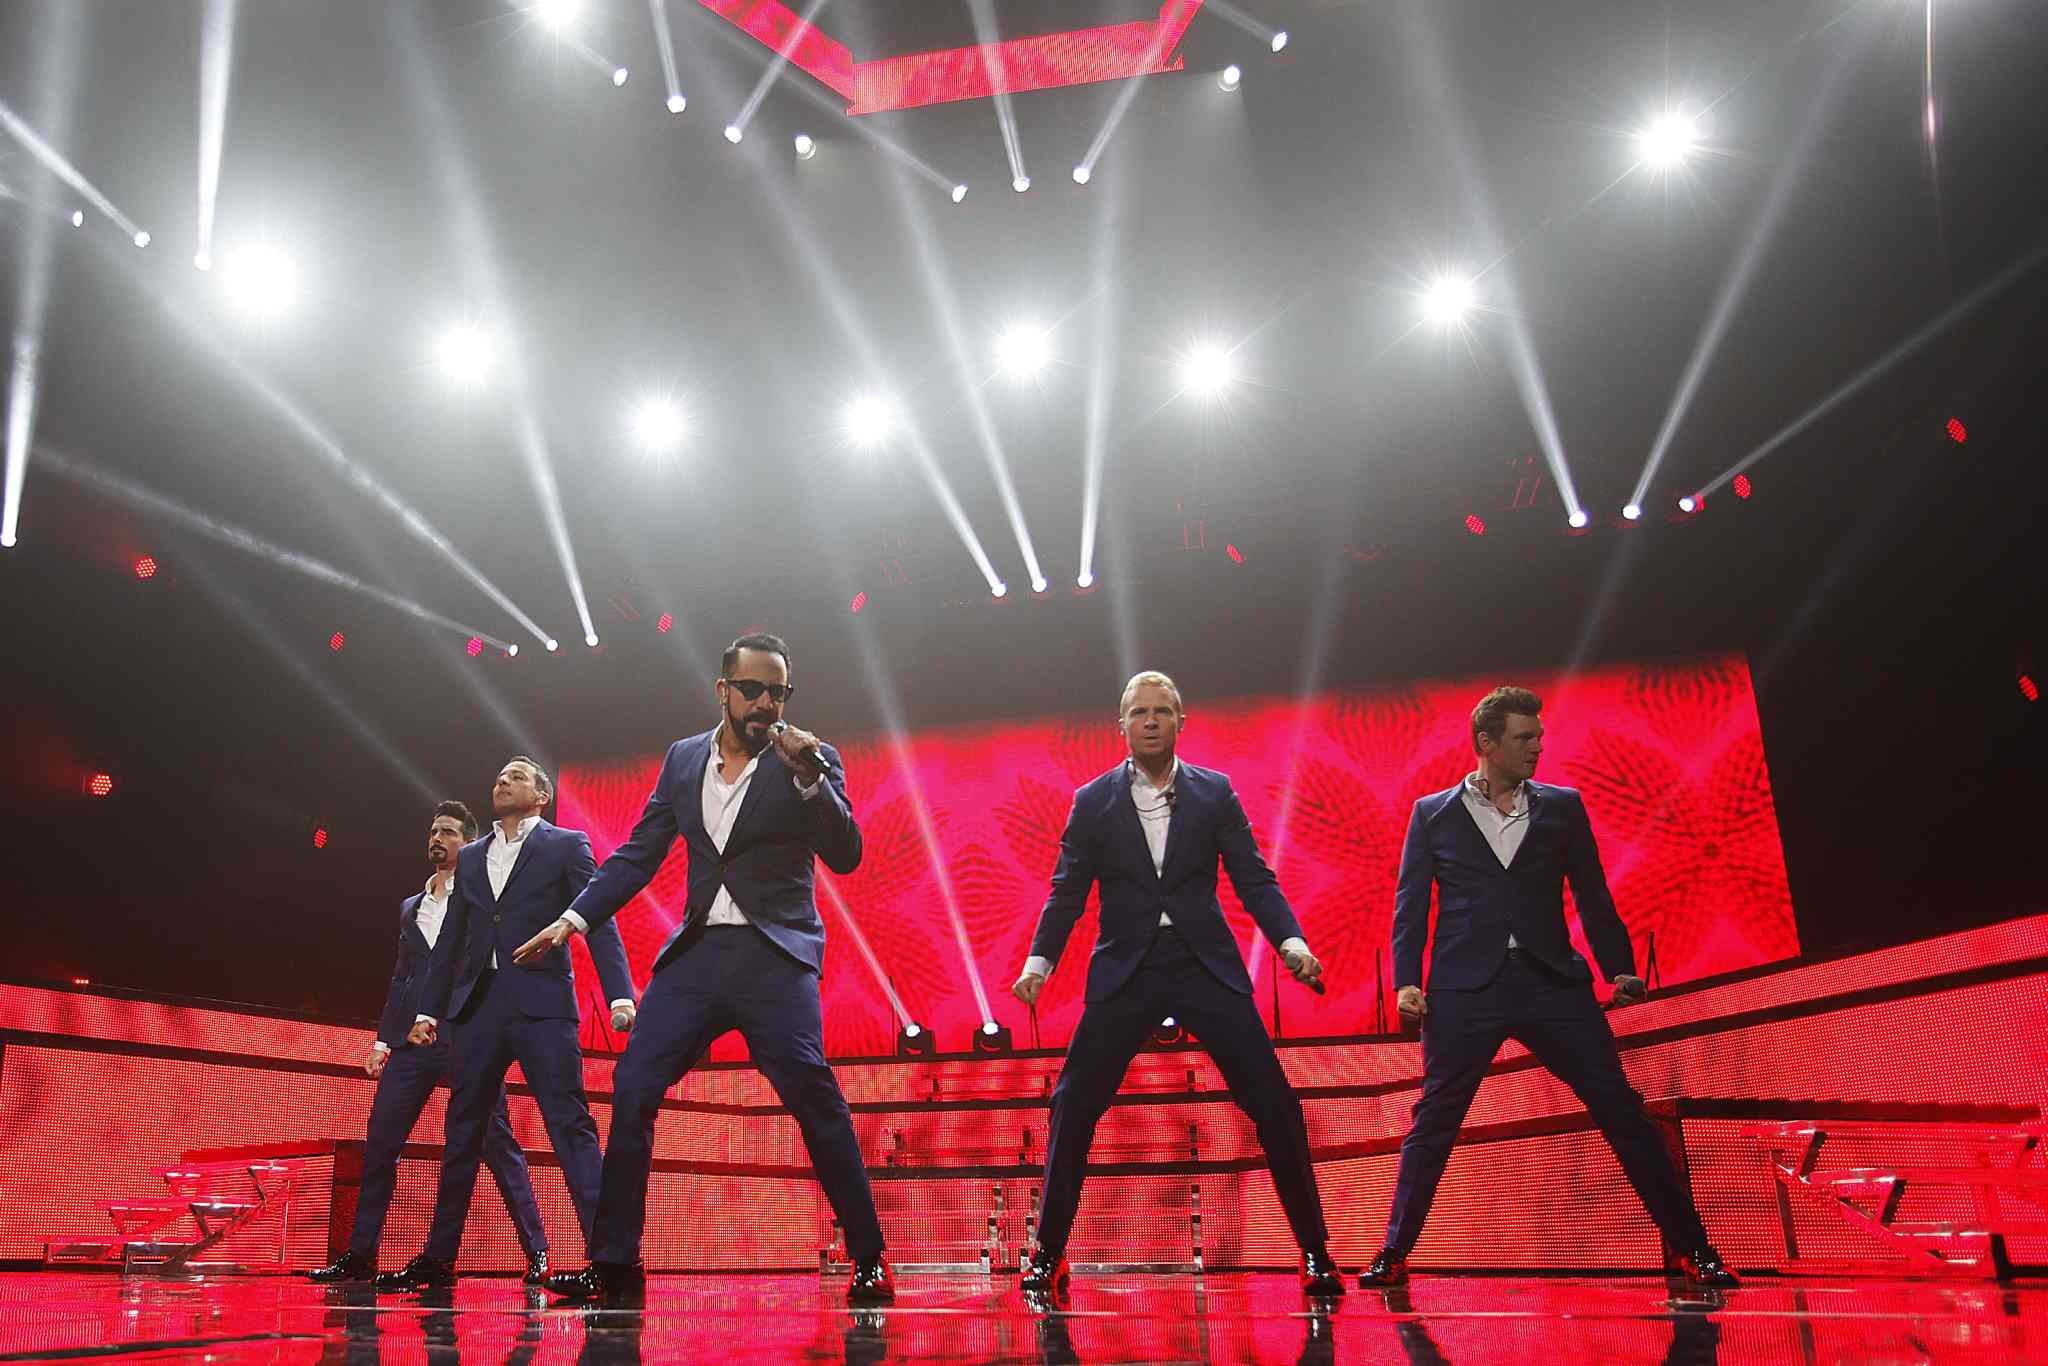 The Backstreet Boys were in fine form at the MTS Centre Sunday night.